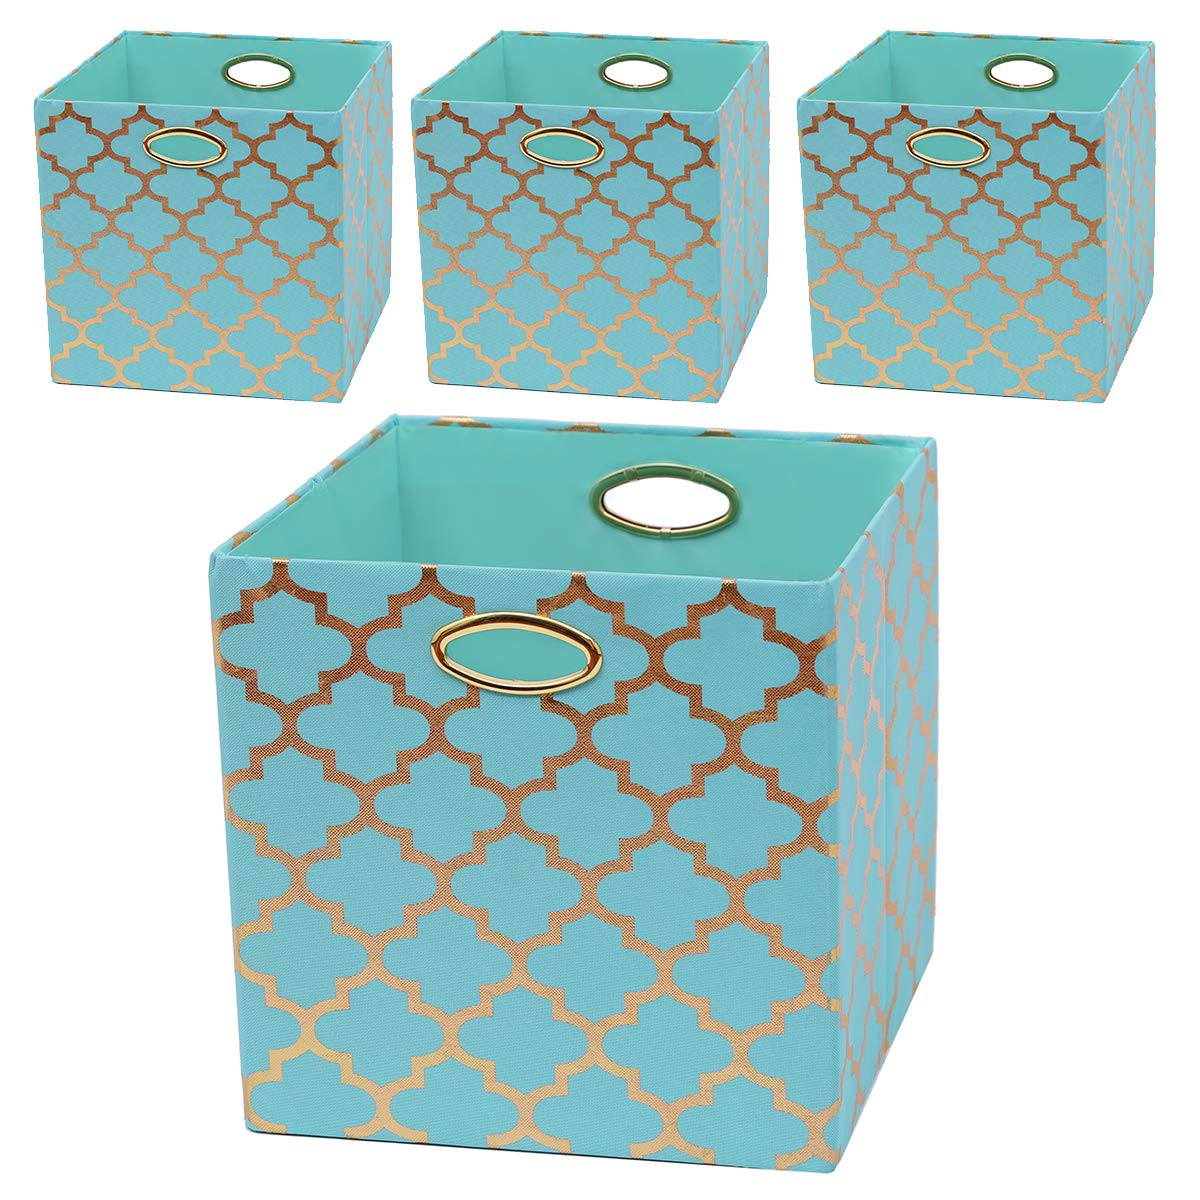 Posprica Storage Bins, 13×13 Foldable Storage Cubes Baskets Boxes Containers Closet Organizers,More Durable Fabric Drawers (4pcs, Aqua/Gold Lantern) by Posprica